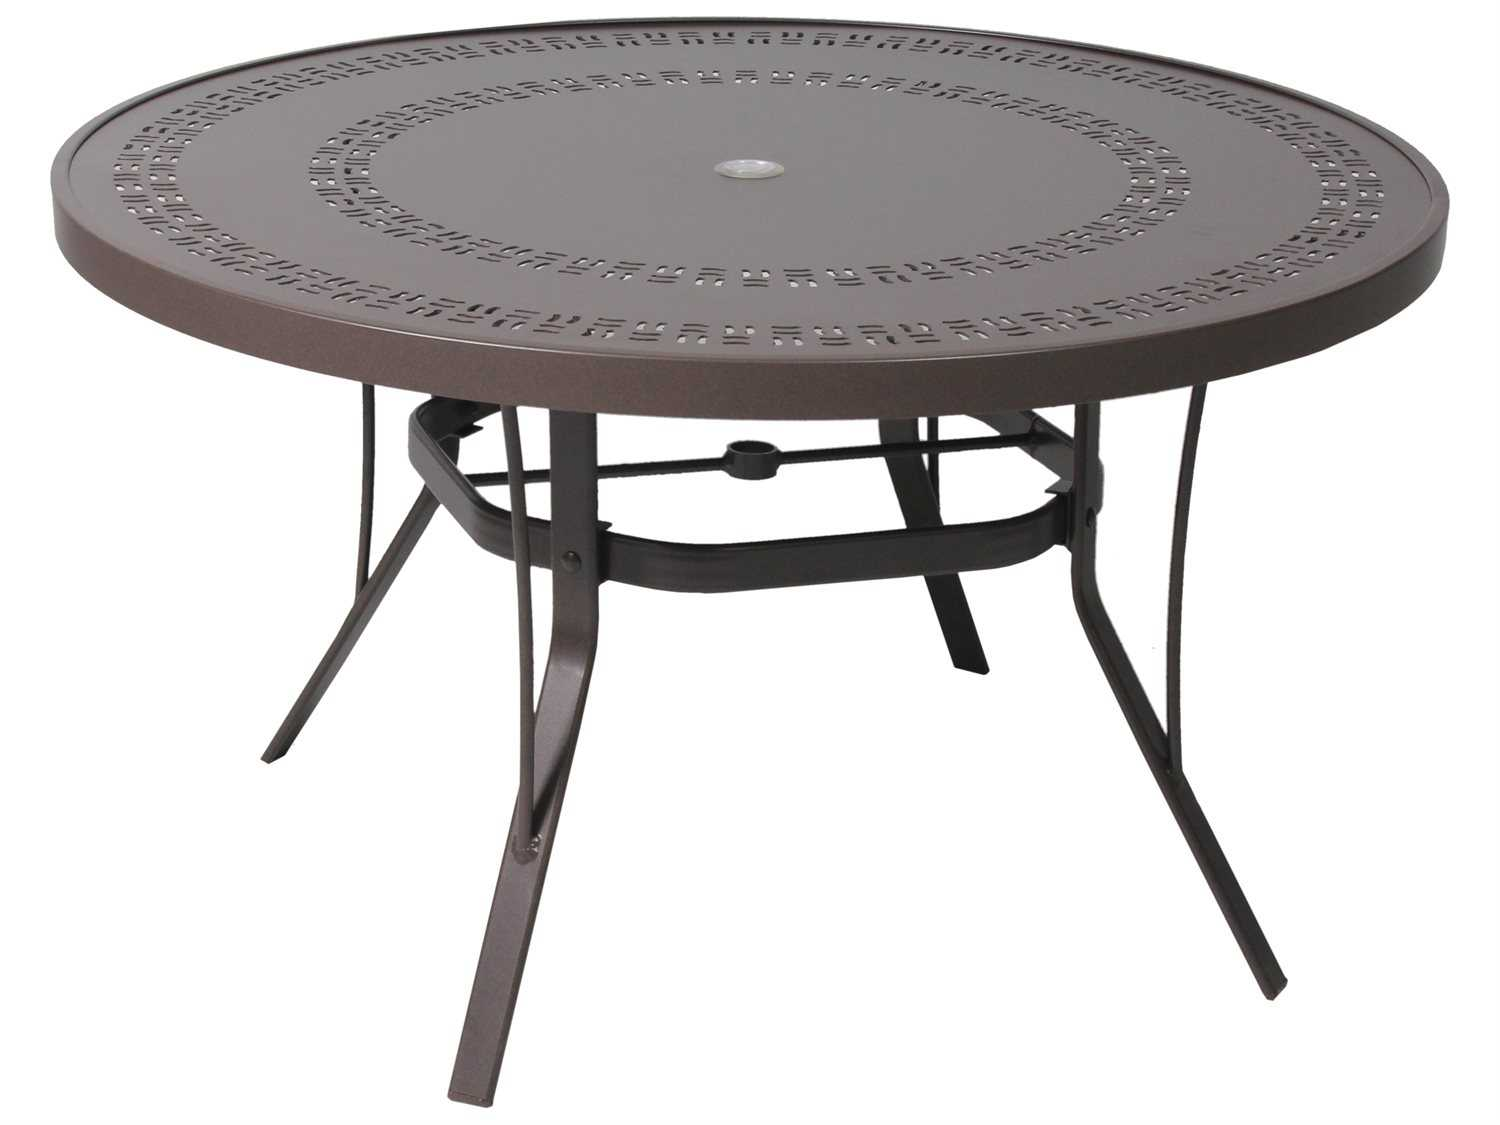 Suncoast patterned square aluminum 42 39 39 round metal coffee - Aluminium picnic table with umbrella ...